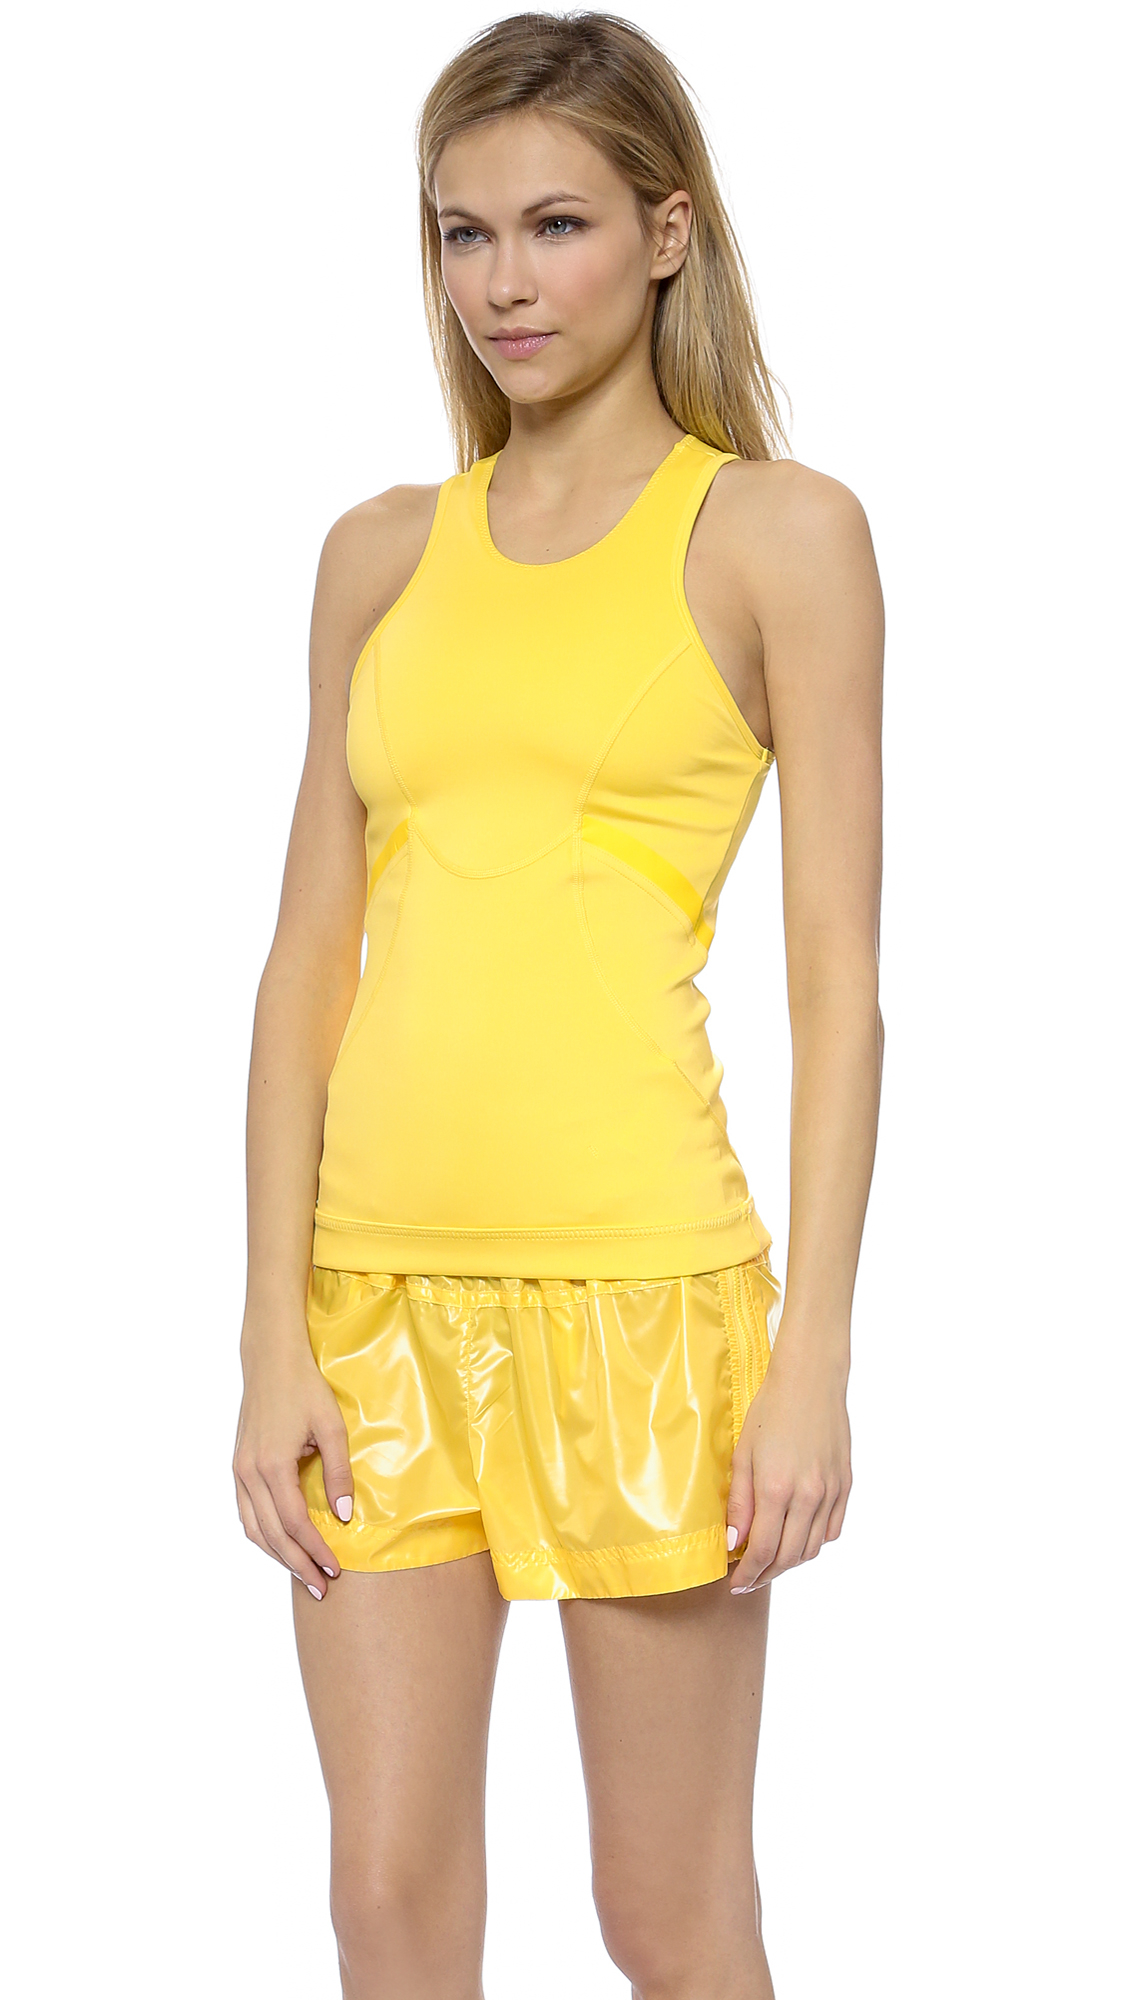 lyst adidas by stella mccartney run perf tank top glow yellow in yellow. Black Bedroom Furniture Sets. Home Design Ideas